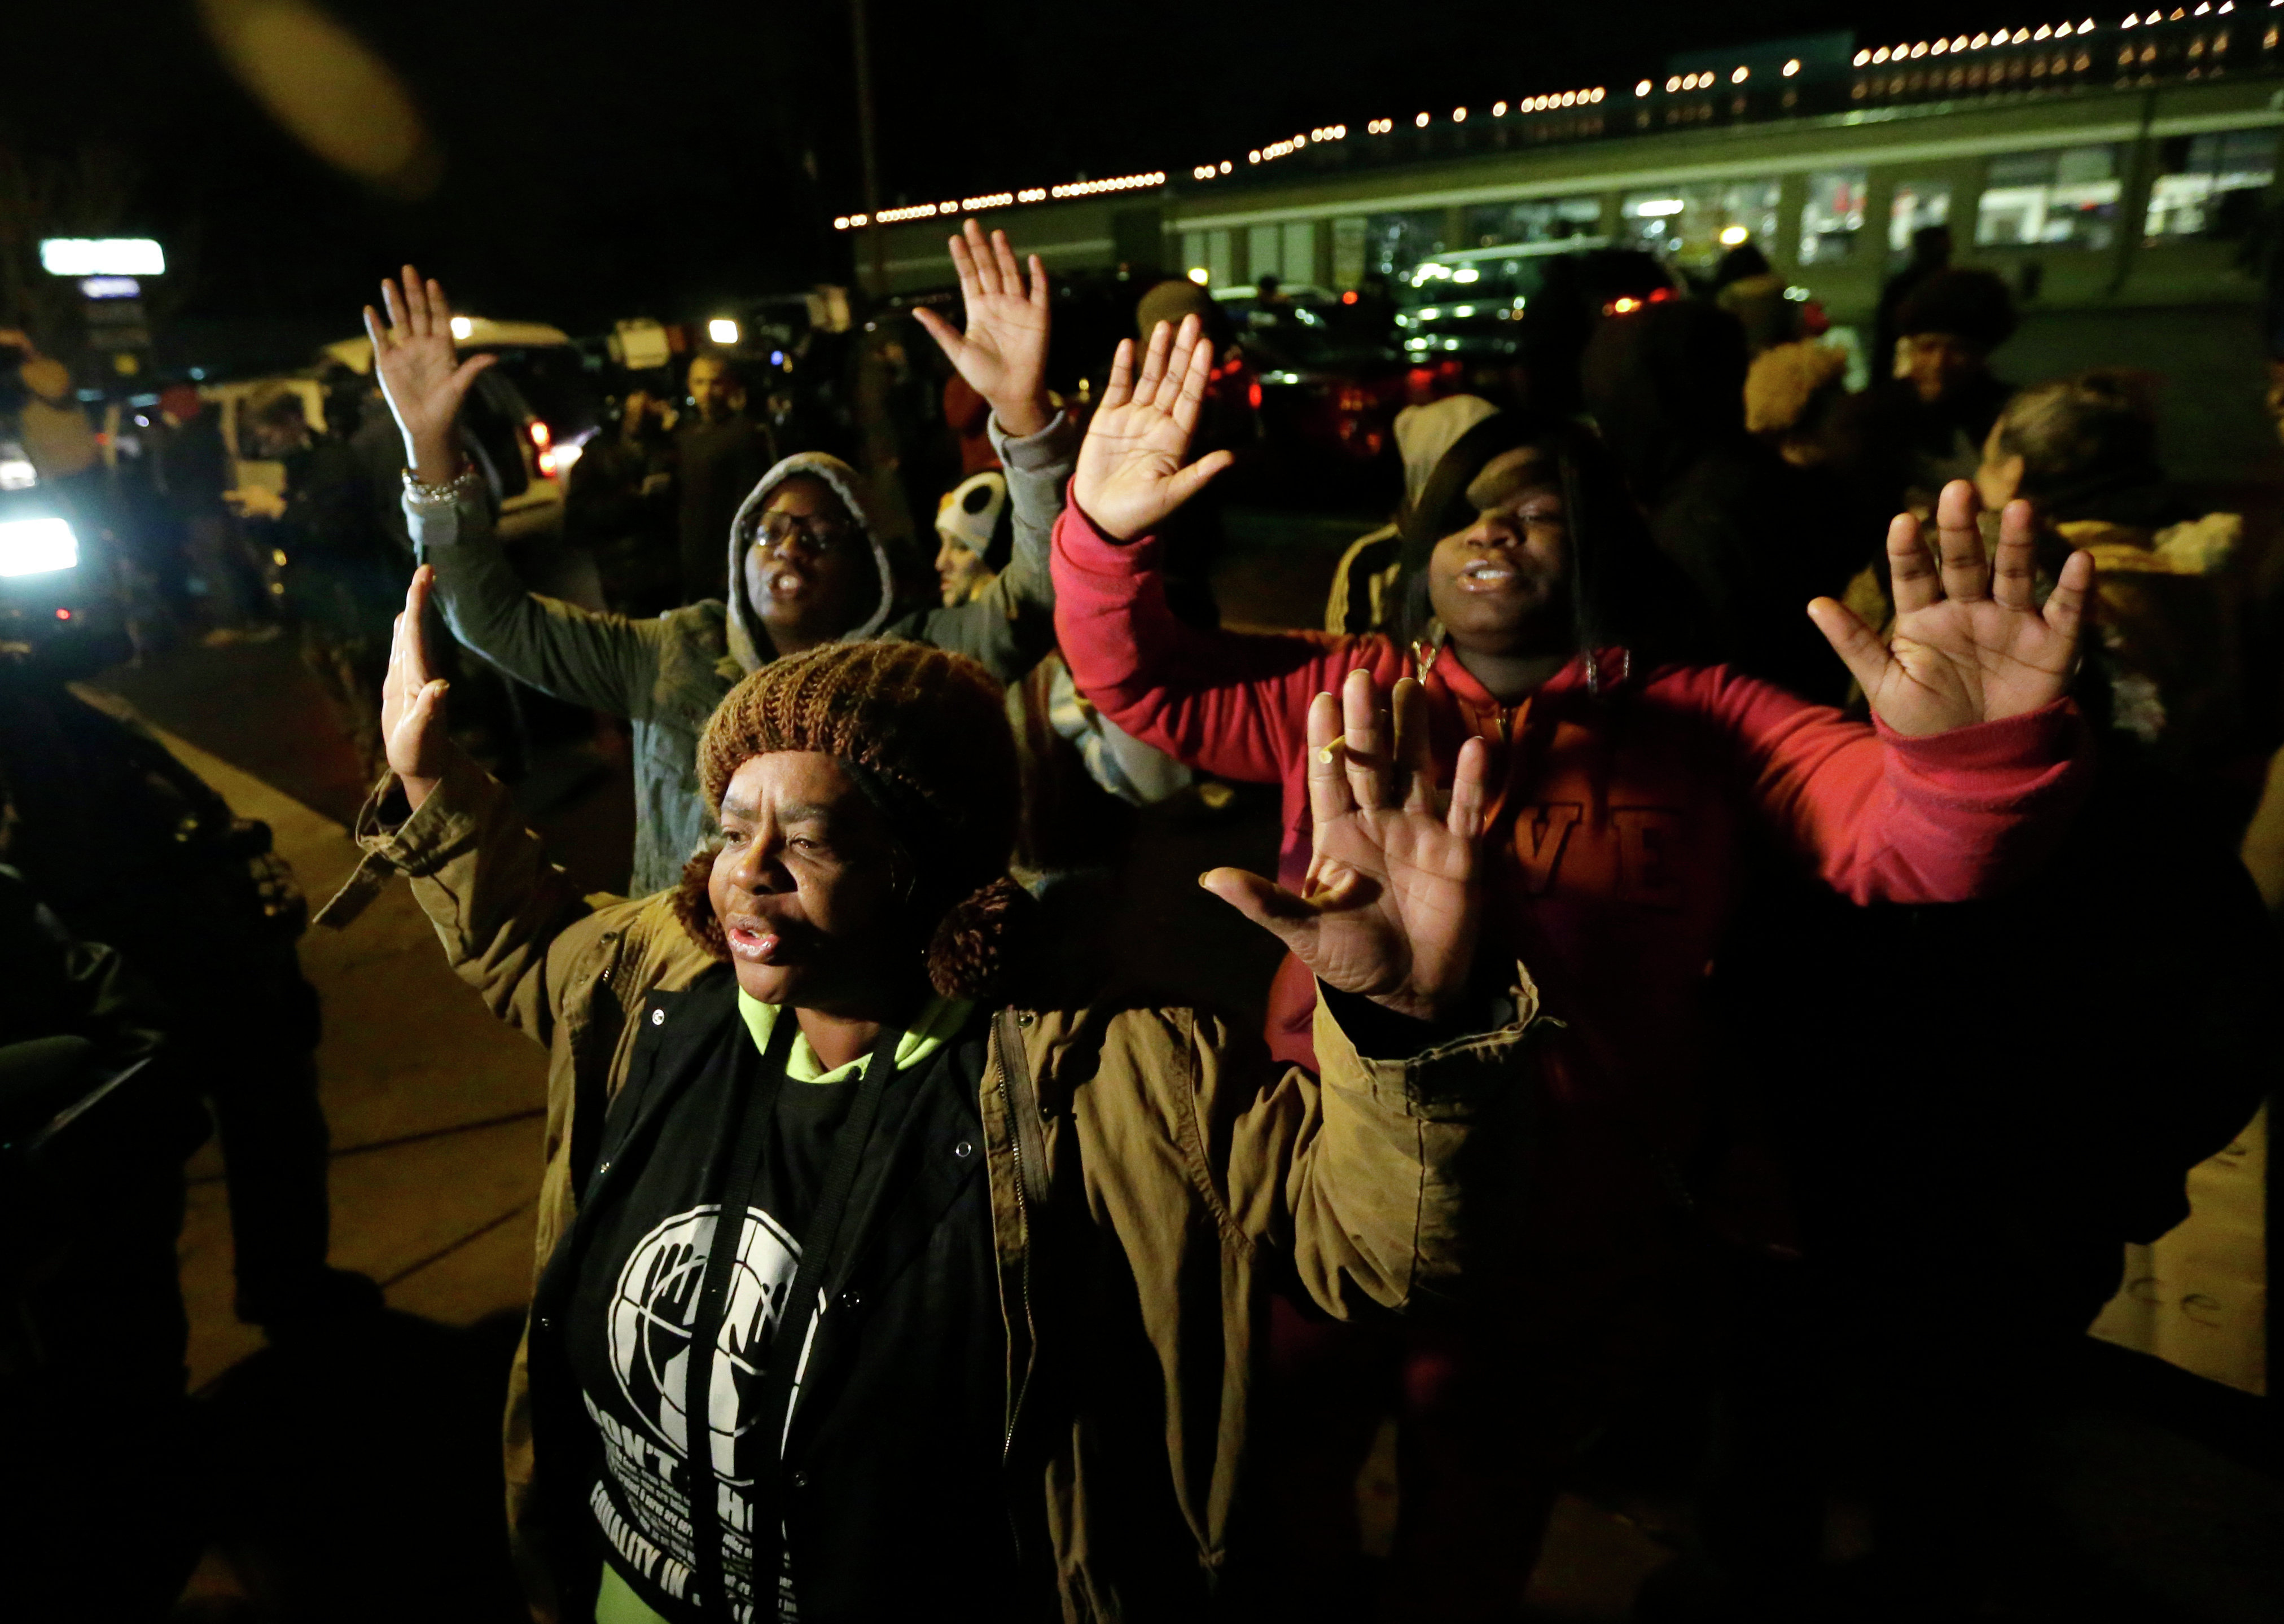 Barbara Jones, joined by other protesters, raises her hands, Monday, Nov. 24, 2014, in Ferguson, Mo., more than three months after an unarmed black 18-year-old man was shot and killed there by a white policeman. Ferguson and the St. Louis region are on edge in anticipation of the announcement by a grand jury whether to criminally charge Officer Darren Wilson in the killing of Michael Brown.